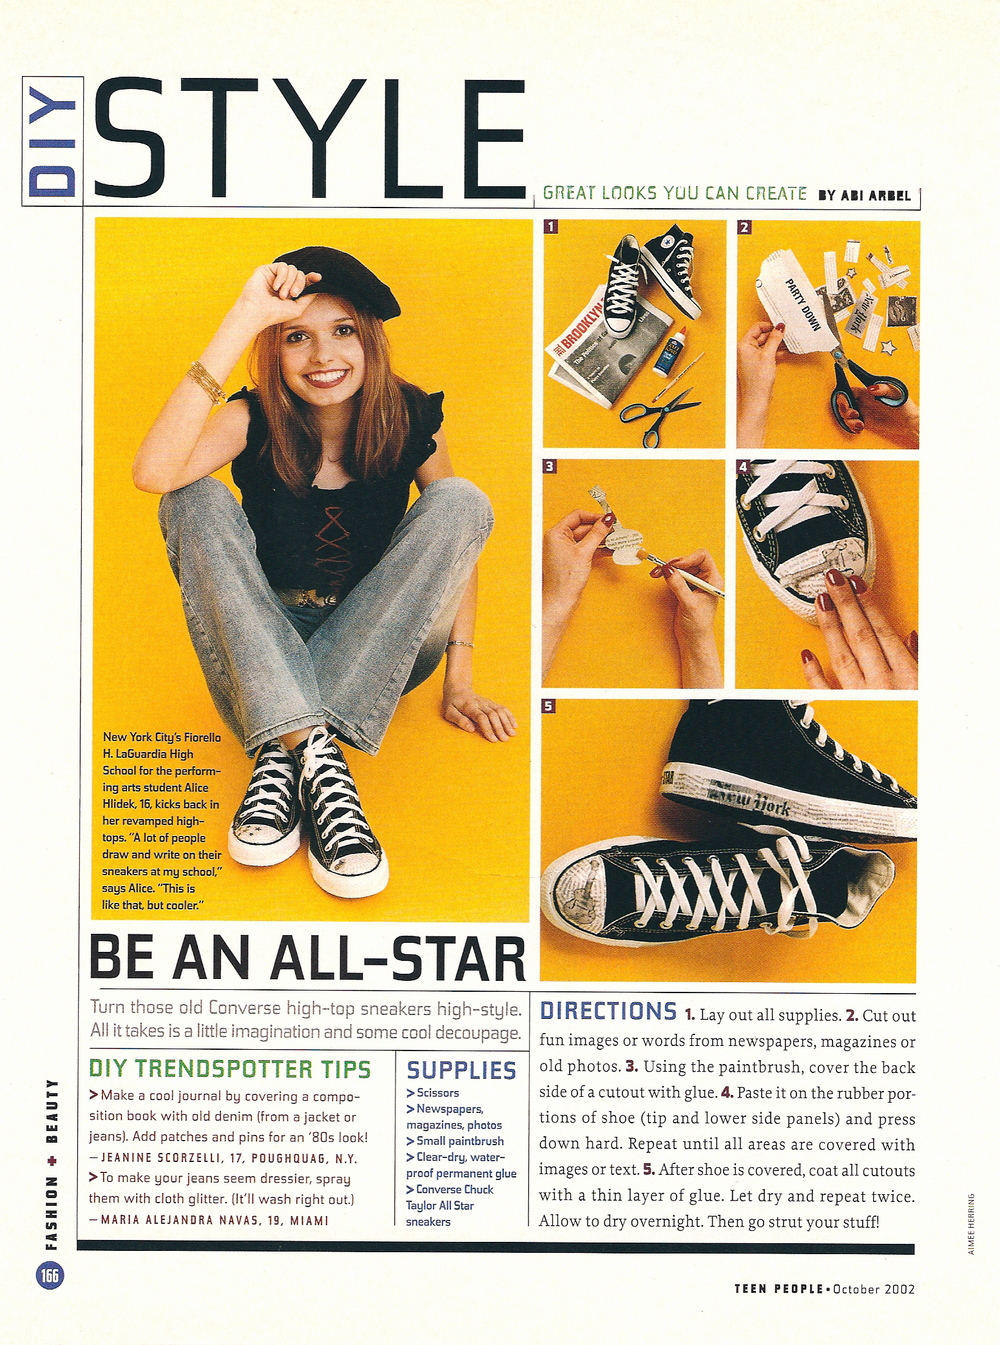 16teen people diy oct 02converse#1C.jpg